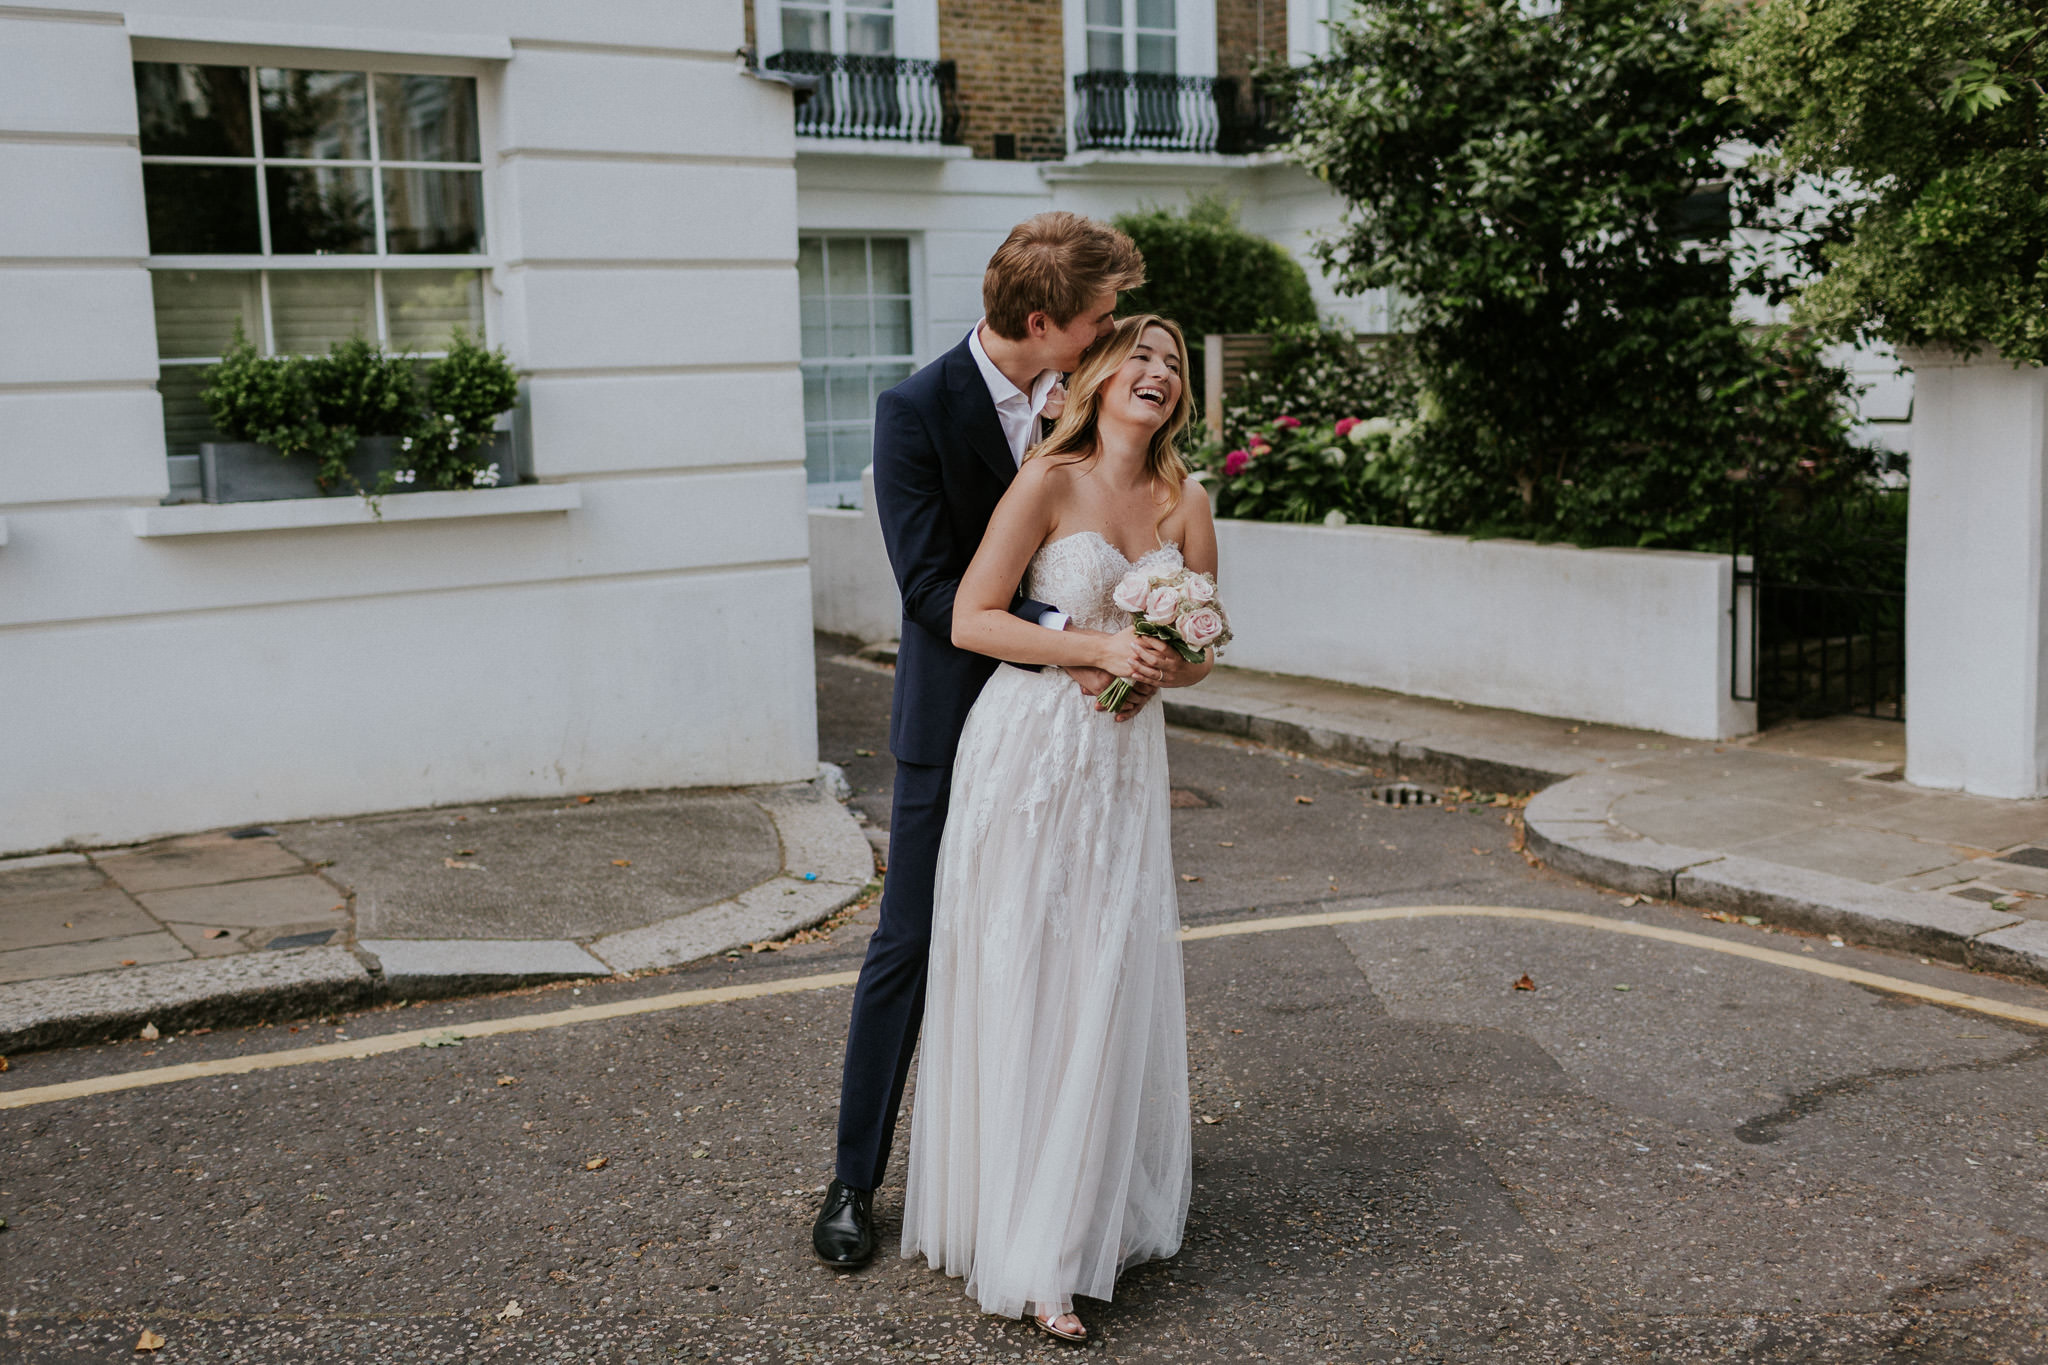 London intimate elopement